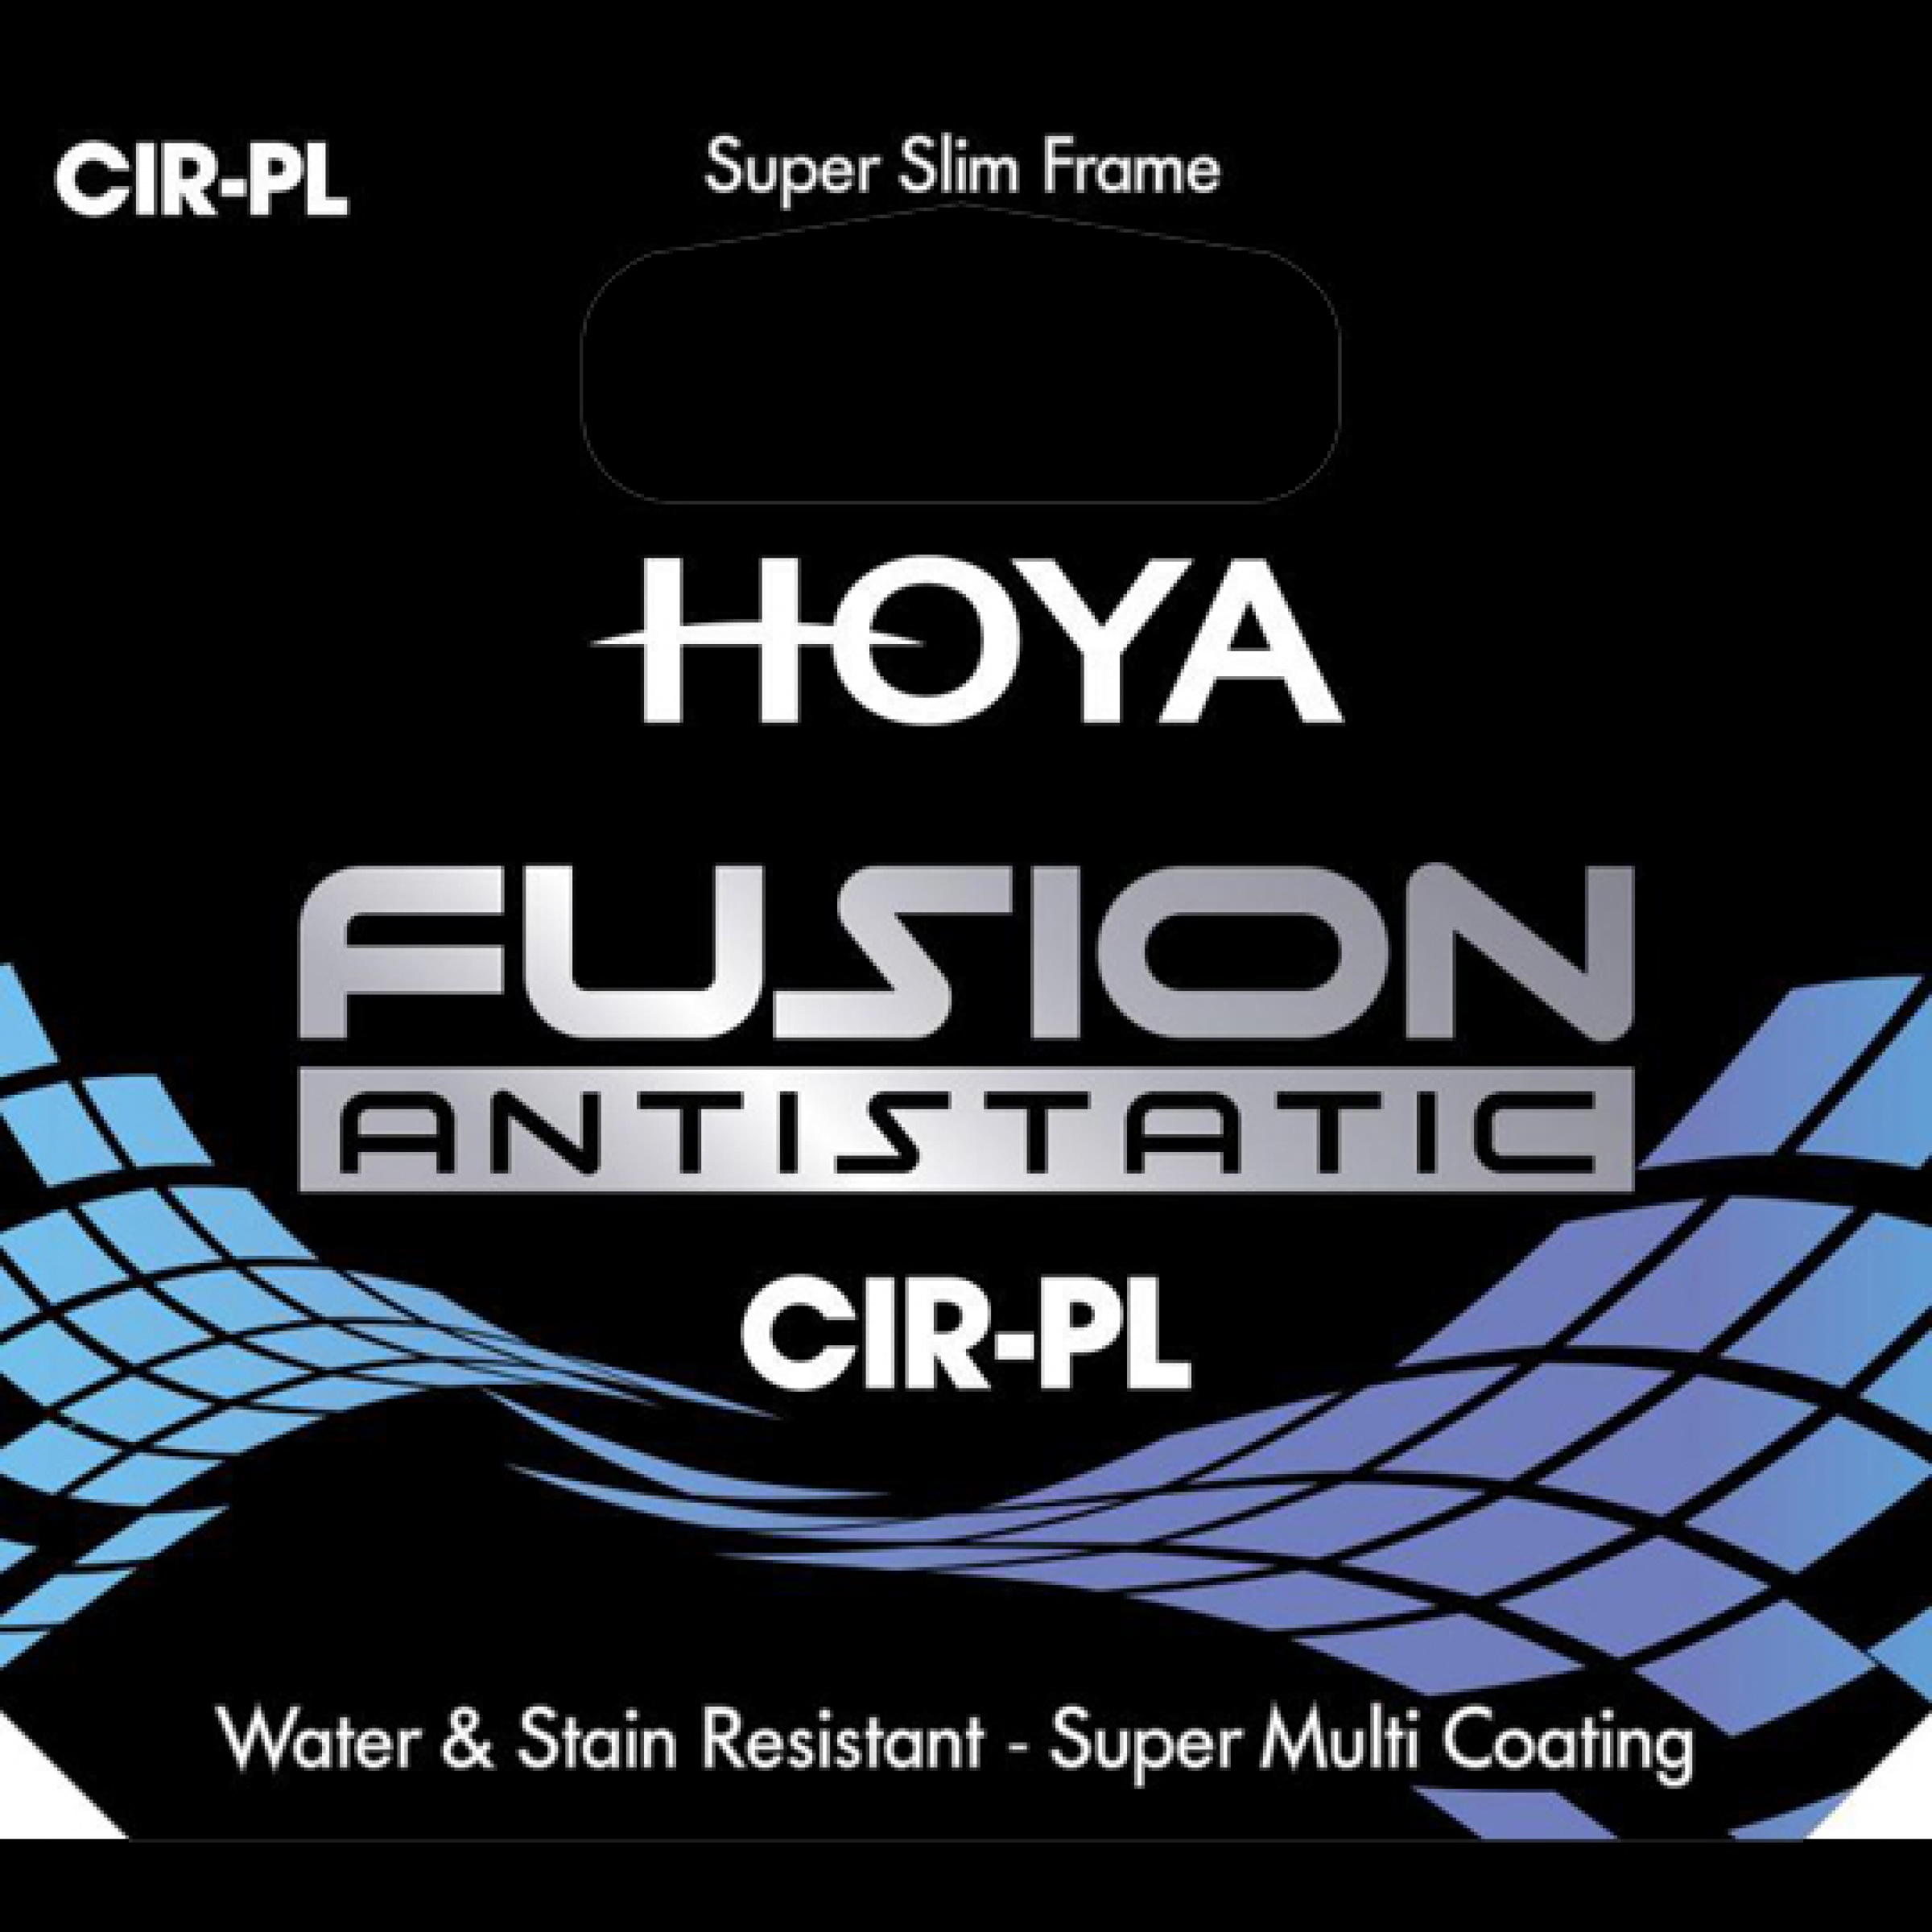 Hoya-49mm-CircPol-Fusion-Antistatic